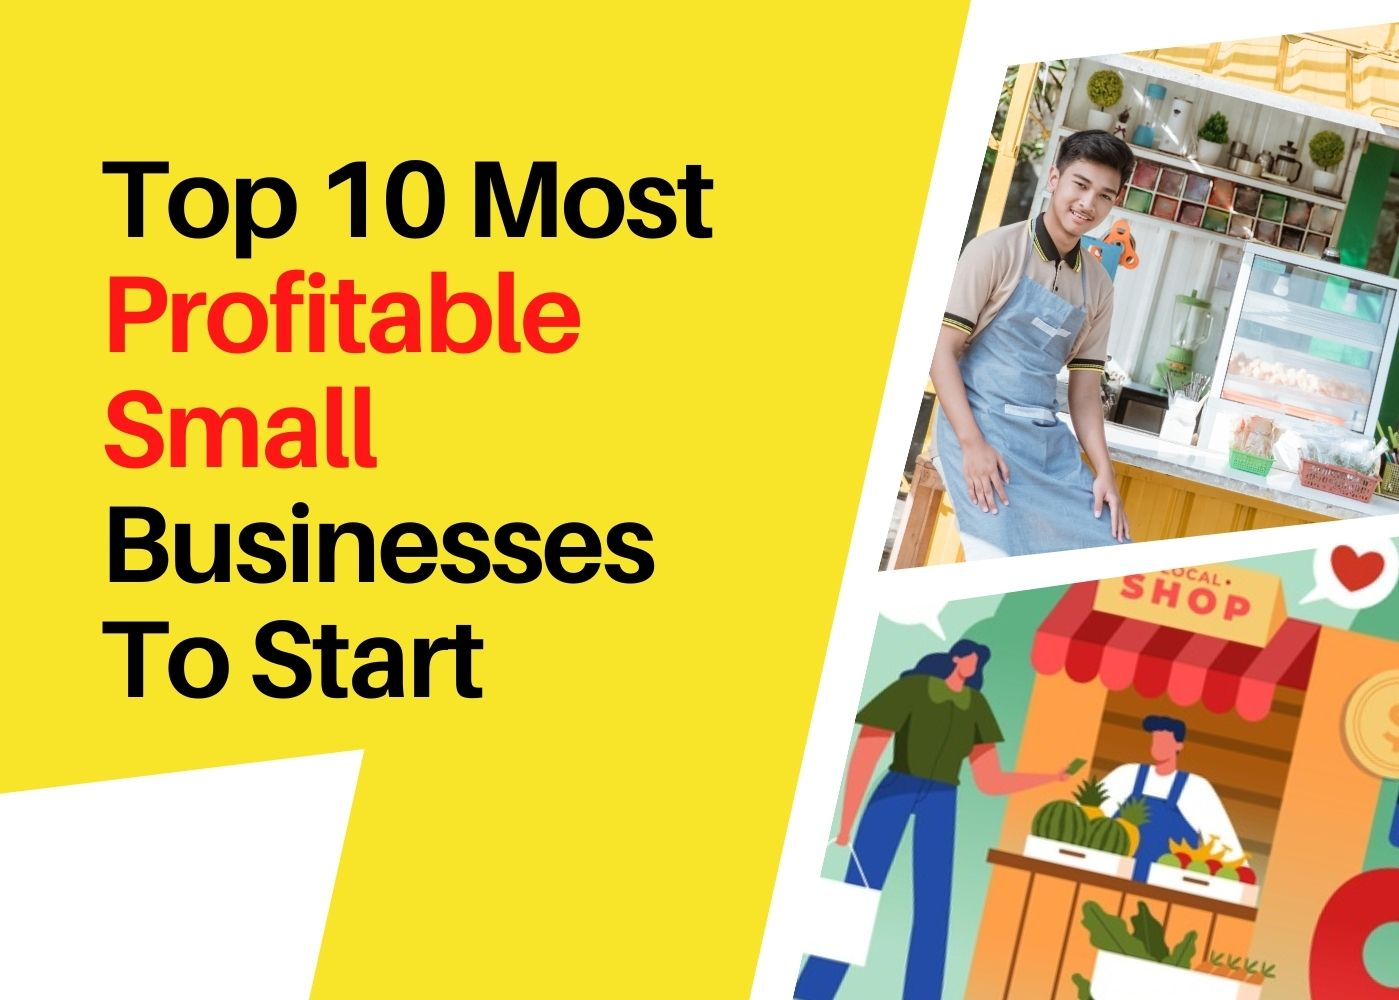 Top 10 Most Profitable Small Businesses To Start in 2021